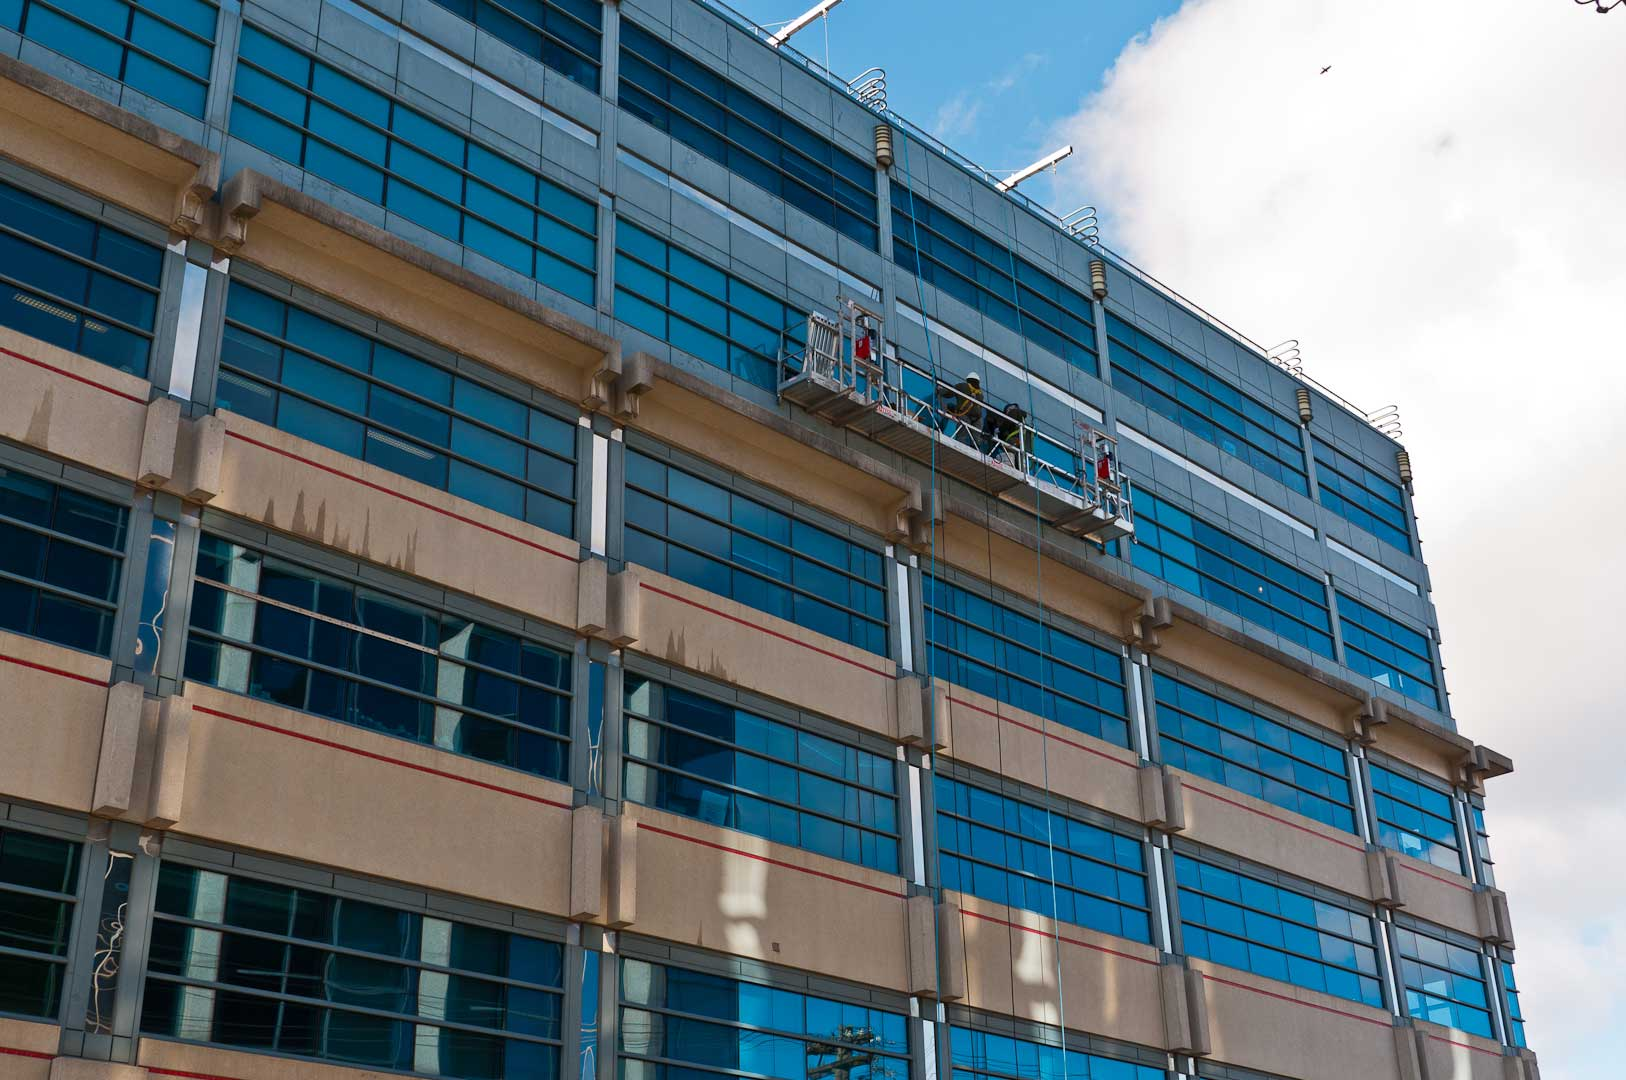 Building Facade Maintenance by High-Rise Experts Explore1.ca with Proper Safety Harnesses